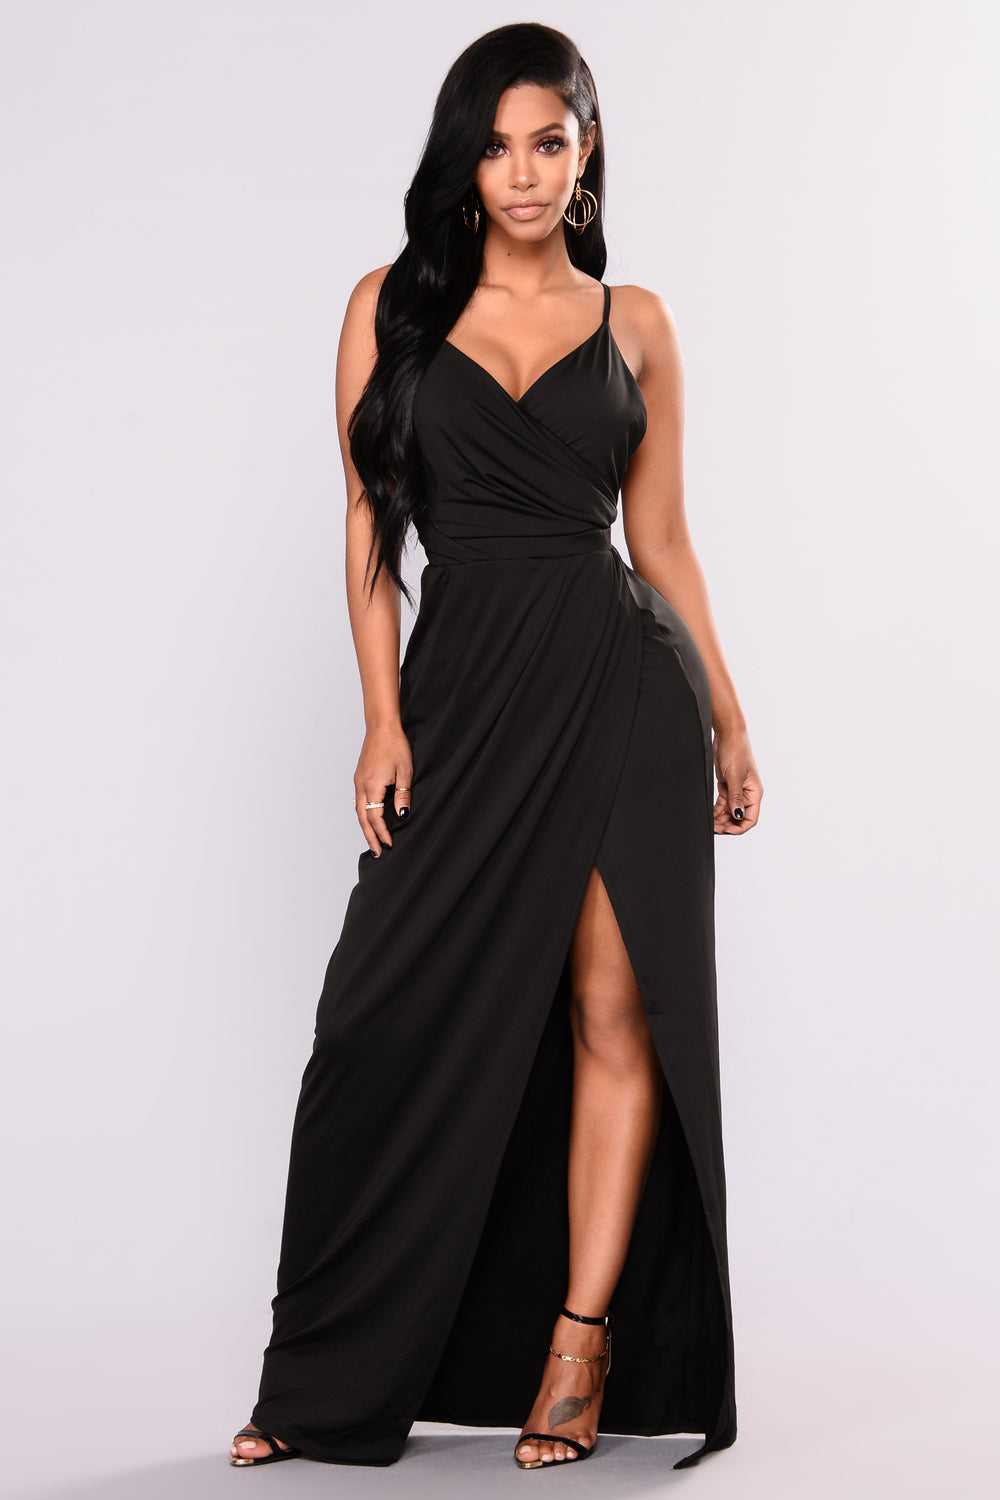 James & Erin Women's Side Slit Maxi Dress, Black, L. $ $ 26 30 Prime. 4 out of 5 stars 1. Social Graces. Our Brand. Social Graces Women's Deep V Illusion Mockneck Ruffle Sleeve Stretch Cocktail Party Knee-Length Dress. $ $ 89 00 Prime. 5 out of 5 stars 1. Wild Meadow.